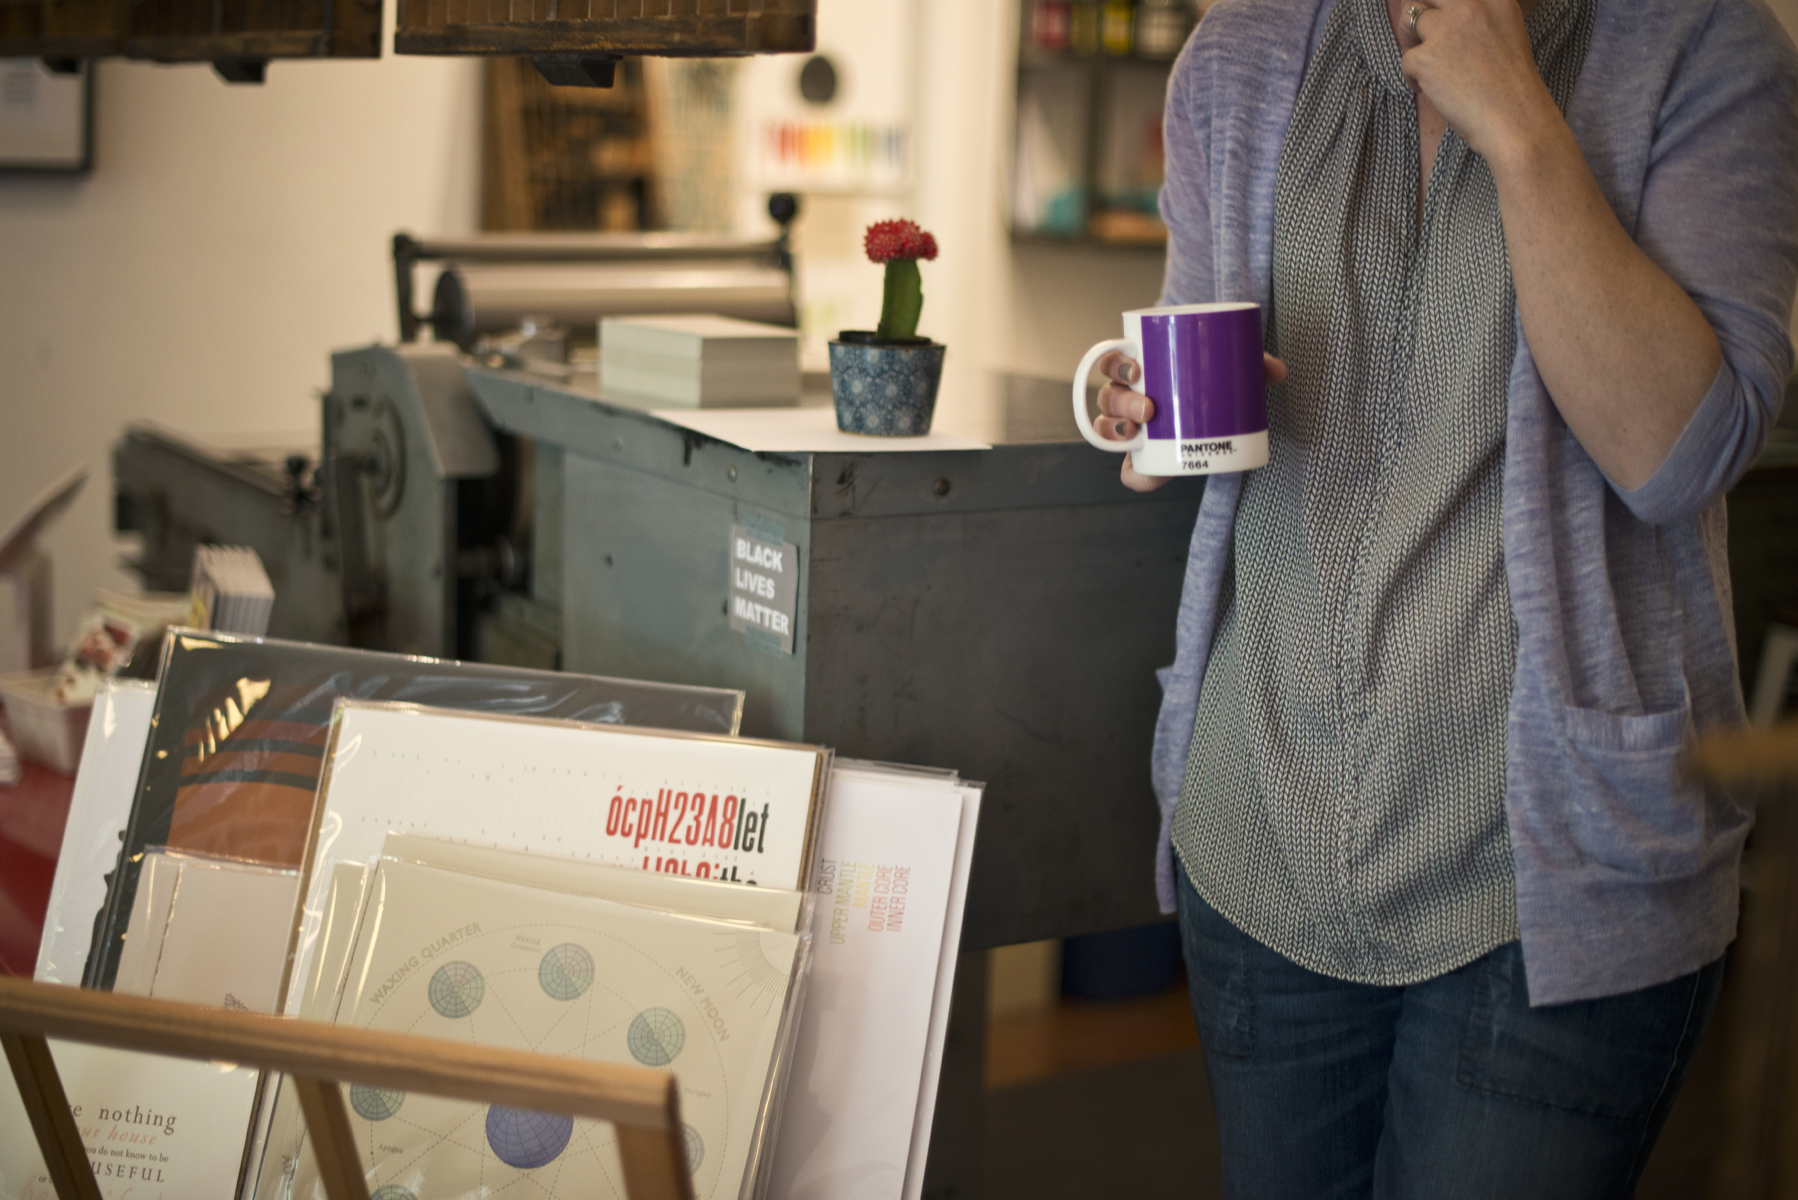 Mandolin Brassaw, owner of Grapheme,with Pantone tea and her letterpress.